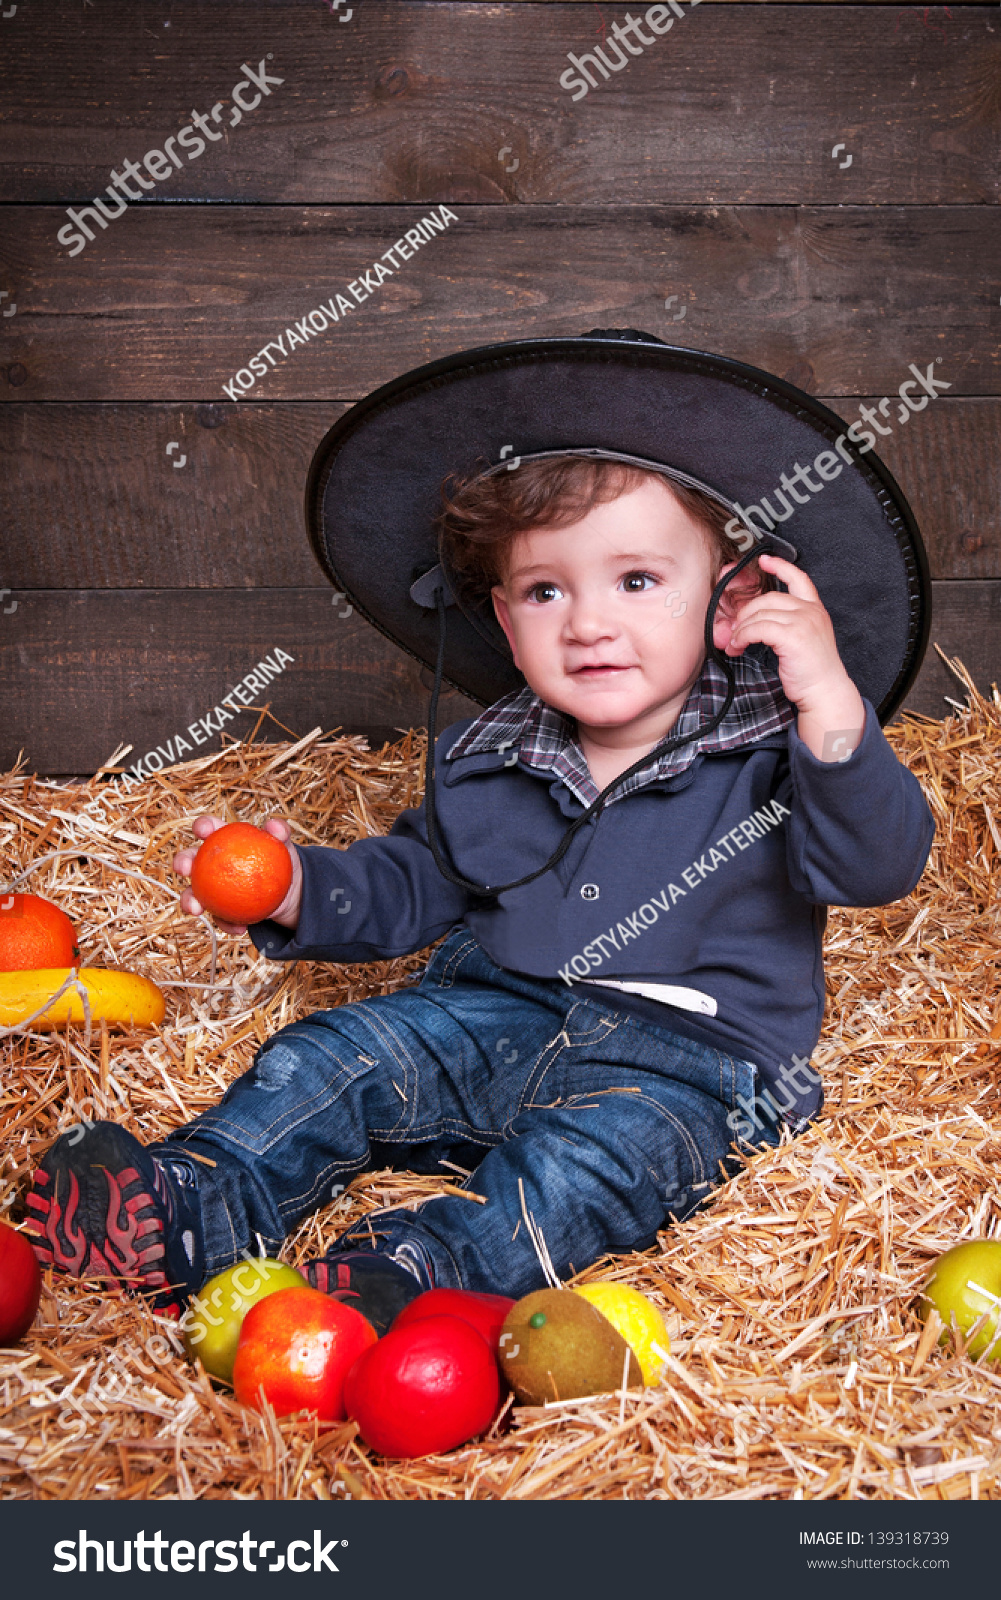 c4498a231a0 funny lovely baby boy little child in trendy jeans on hay in a cowboy s hat  .